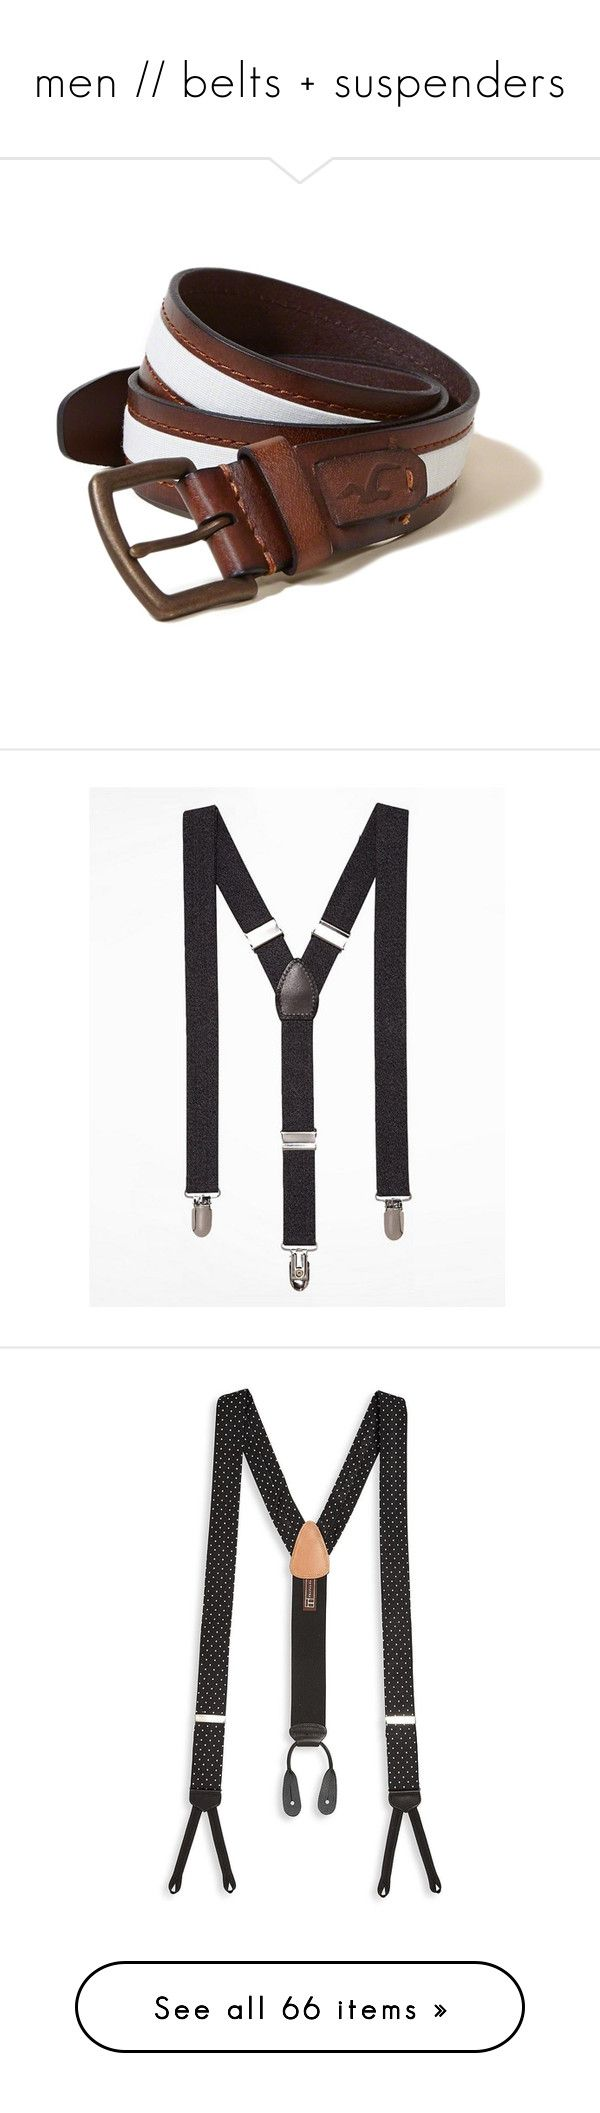 """men // belts + suspenders"" by freckledreams ❤ liked on Polyvore featuring men's fashion, men's accessories, men's belts, brown and white, mens brown leather belt, mens brown belt, mens white belt, mens white leather belt, light brown and mens woven belts"